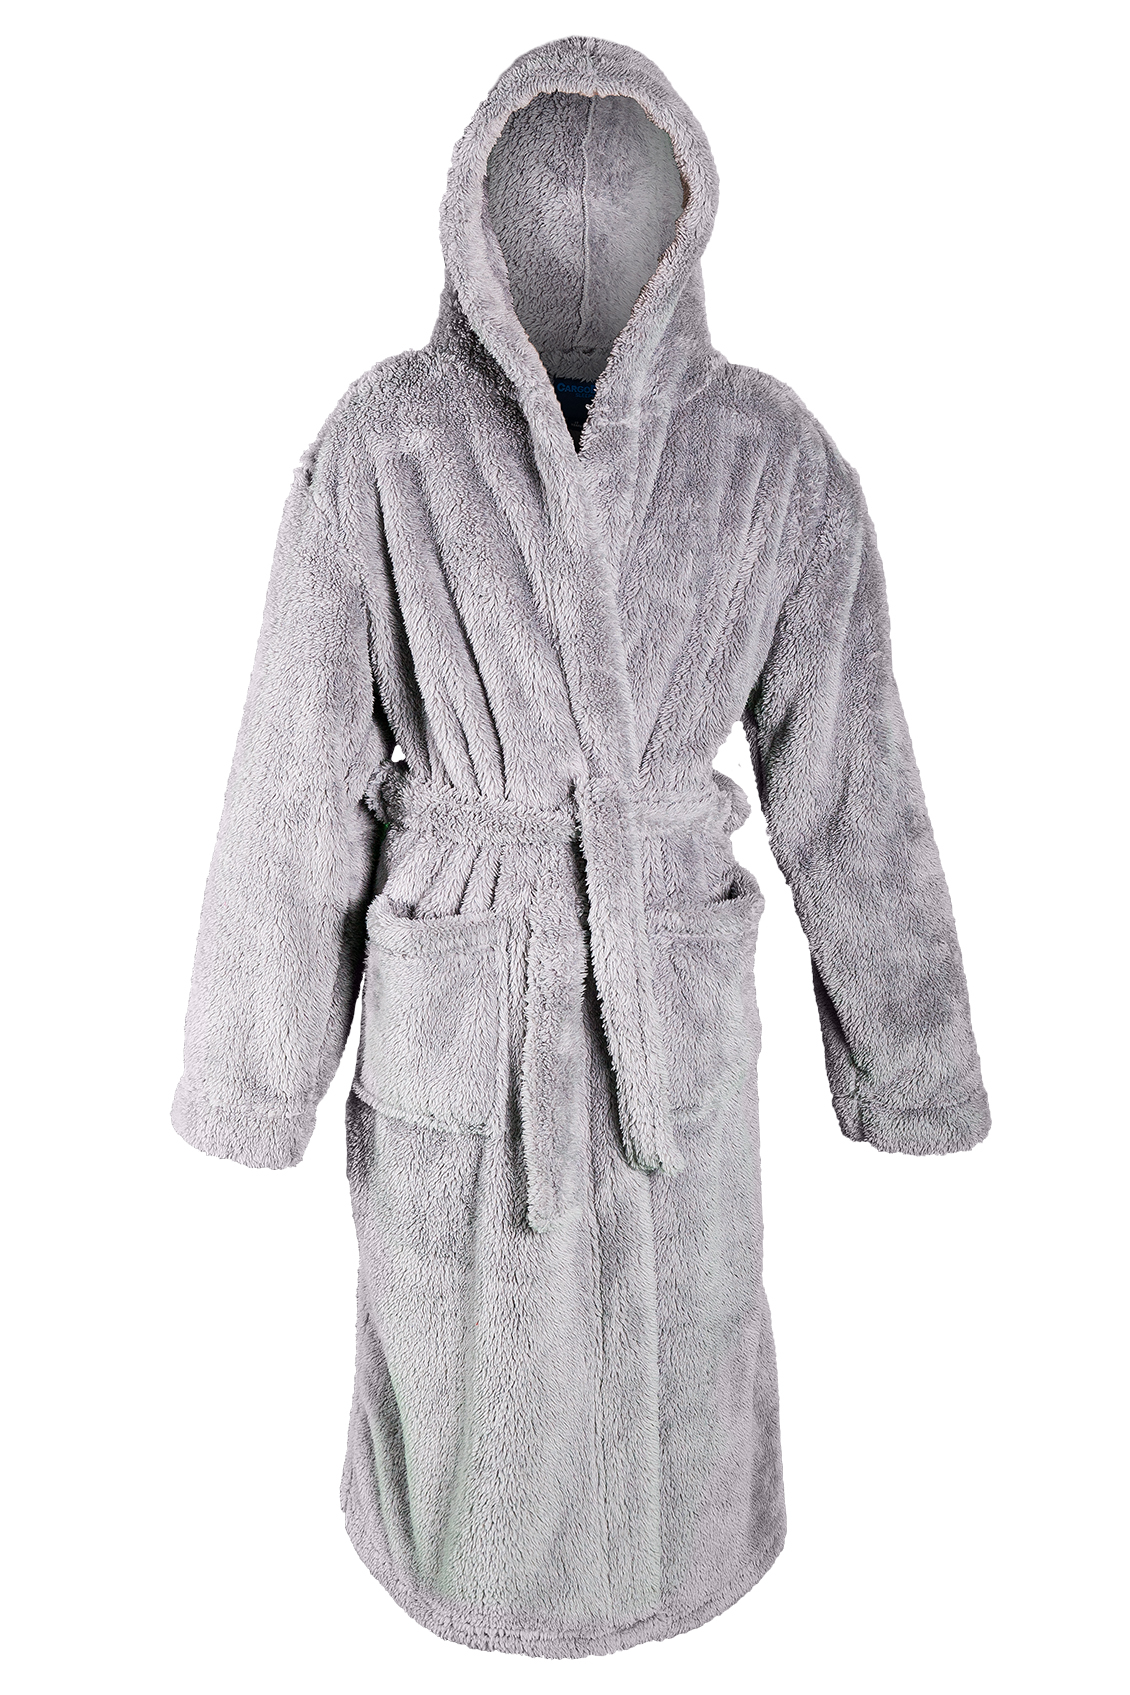 boys luxury hooded dressing gown fleece bath robe. Black Bedroom Furniture Sets. Home Design Ideas